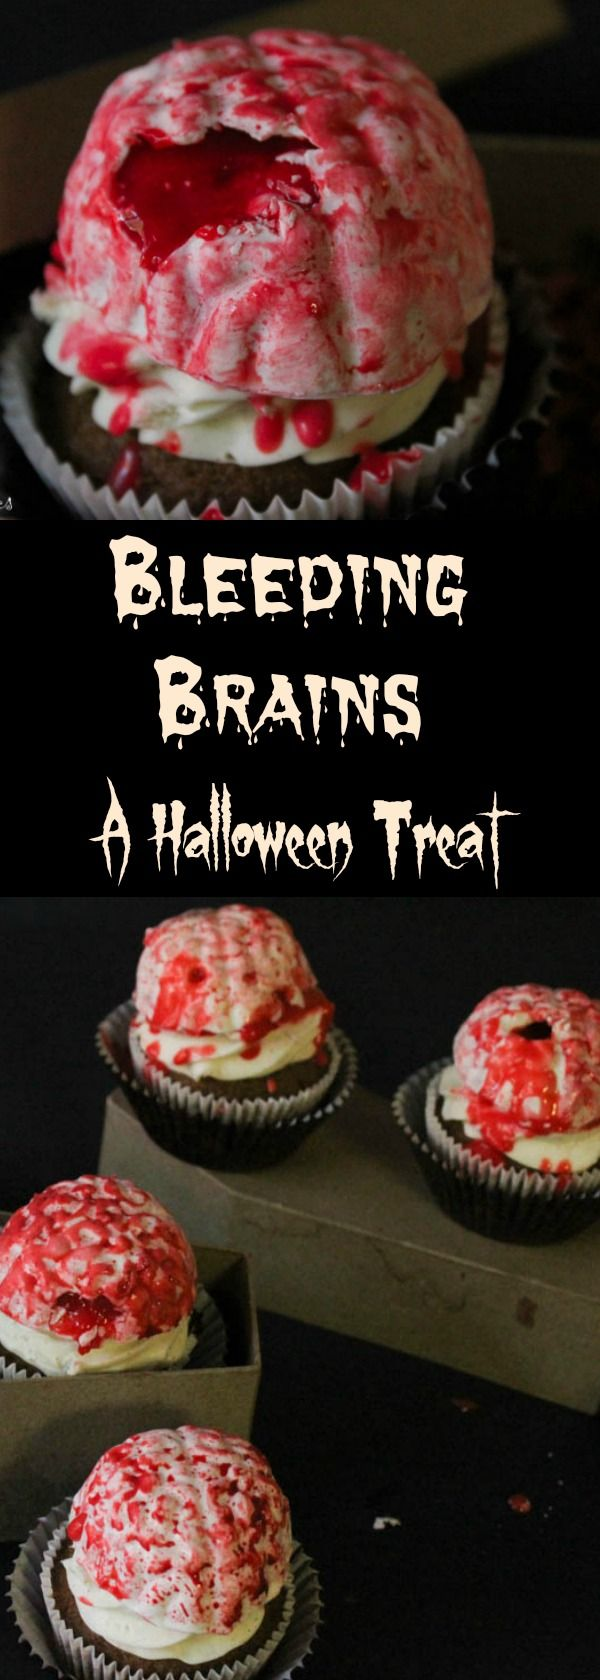 Halloween bleeding brain treats. Easy fast and bloody gross cupcake toppers you can use as vodka shots. #halloween#halloweentreats#bleedingbrains#halloweenfood#cupcaketoppers